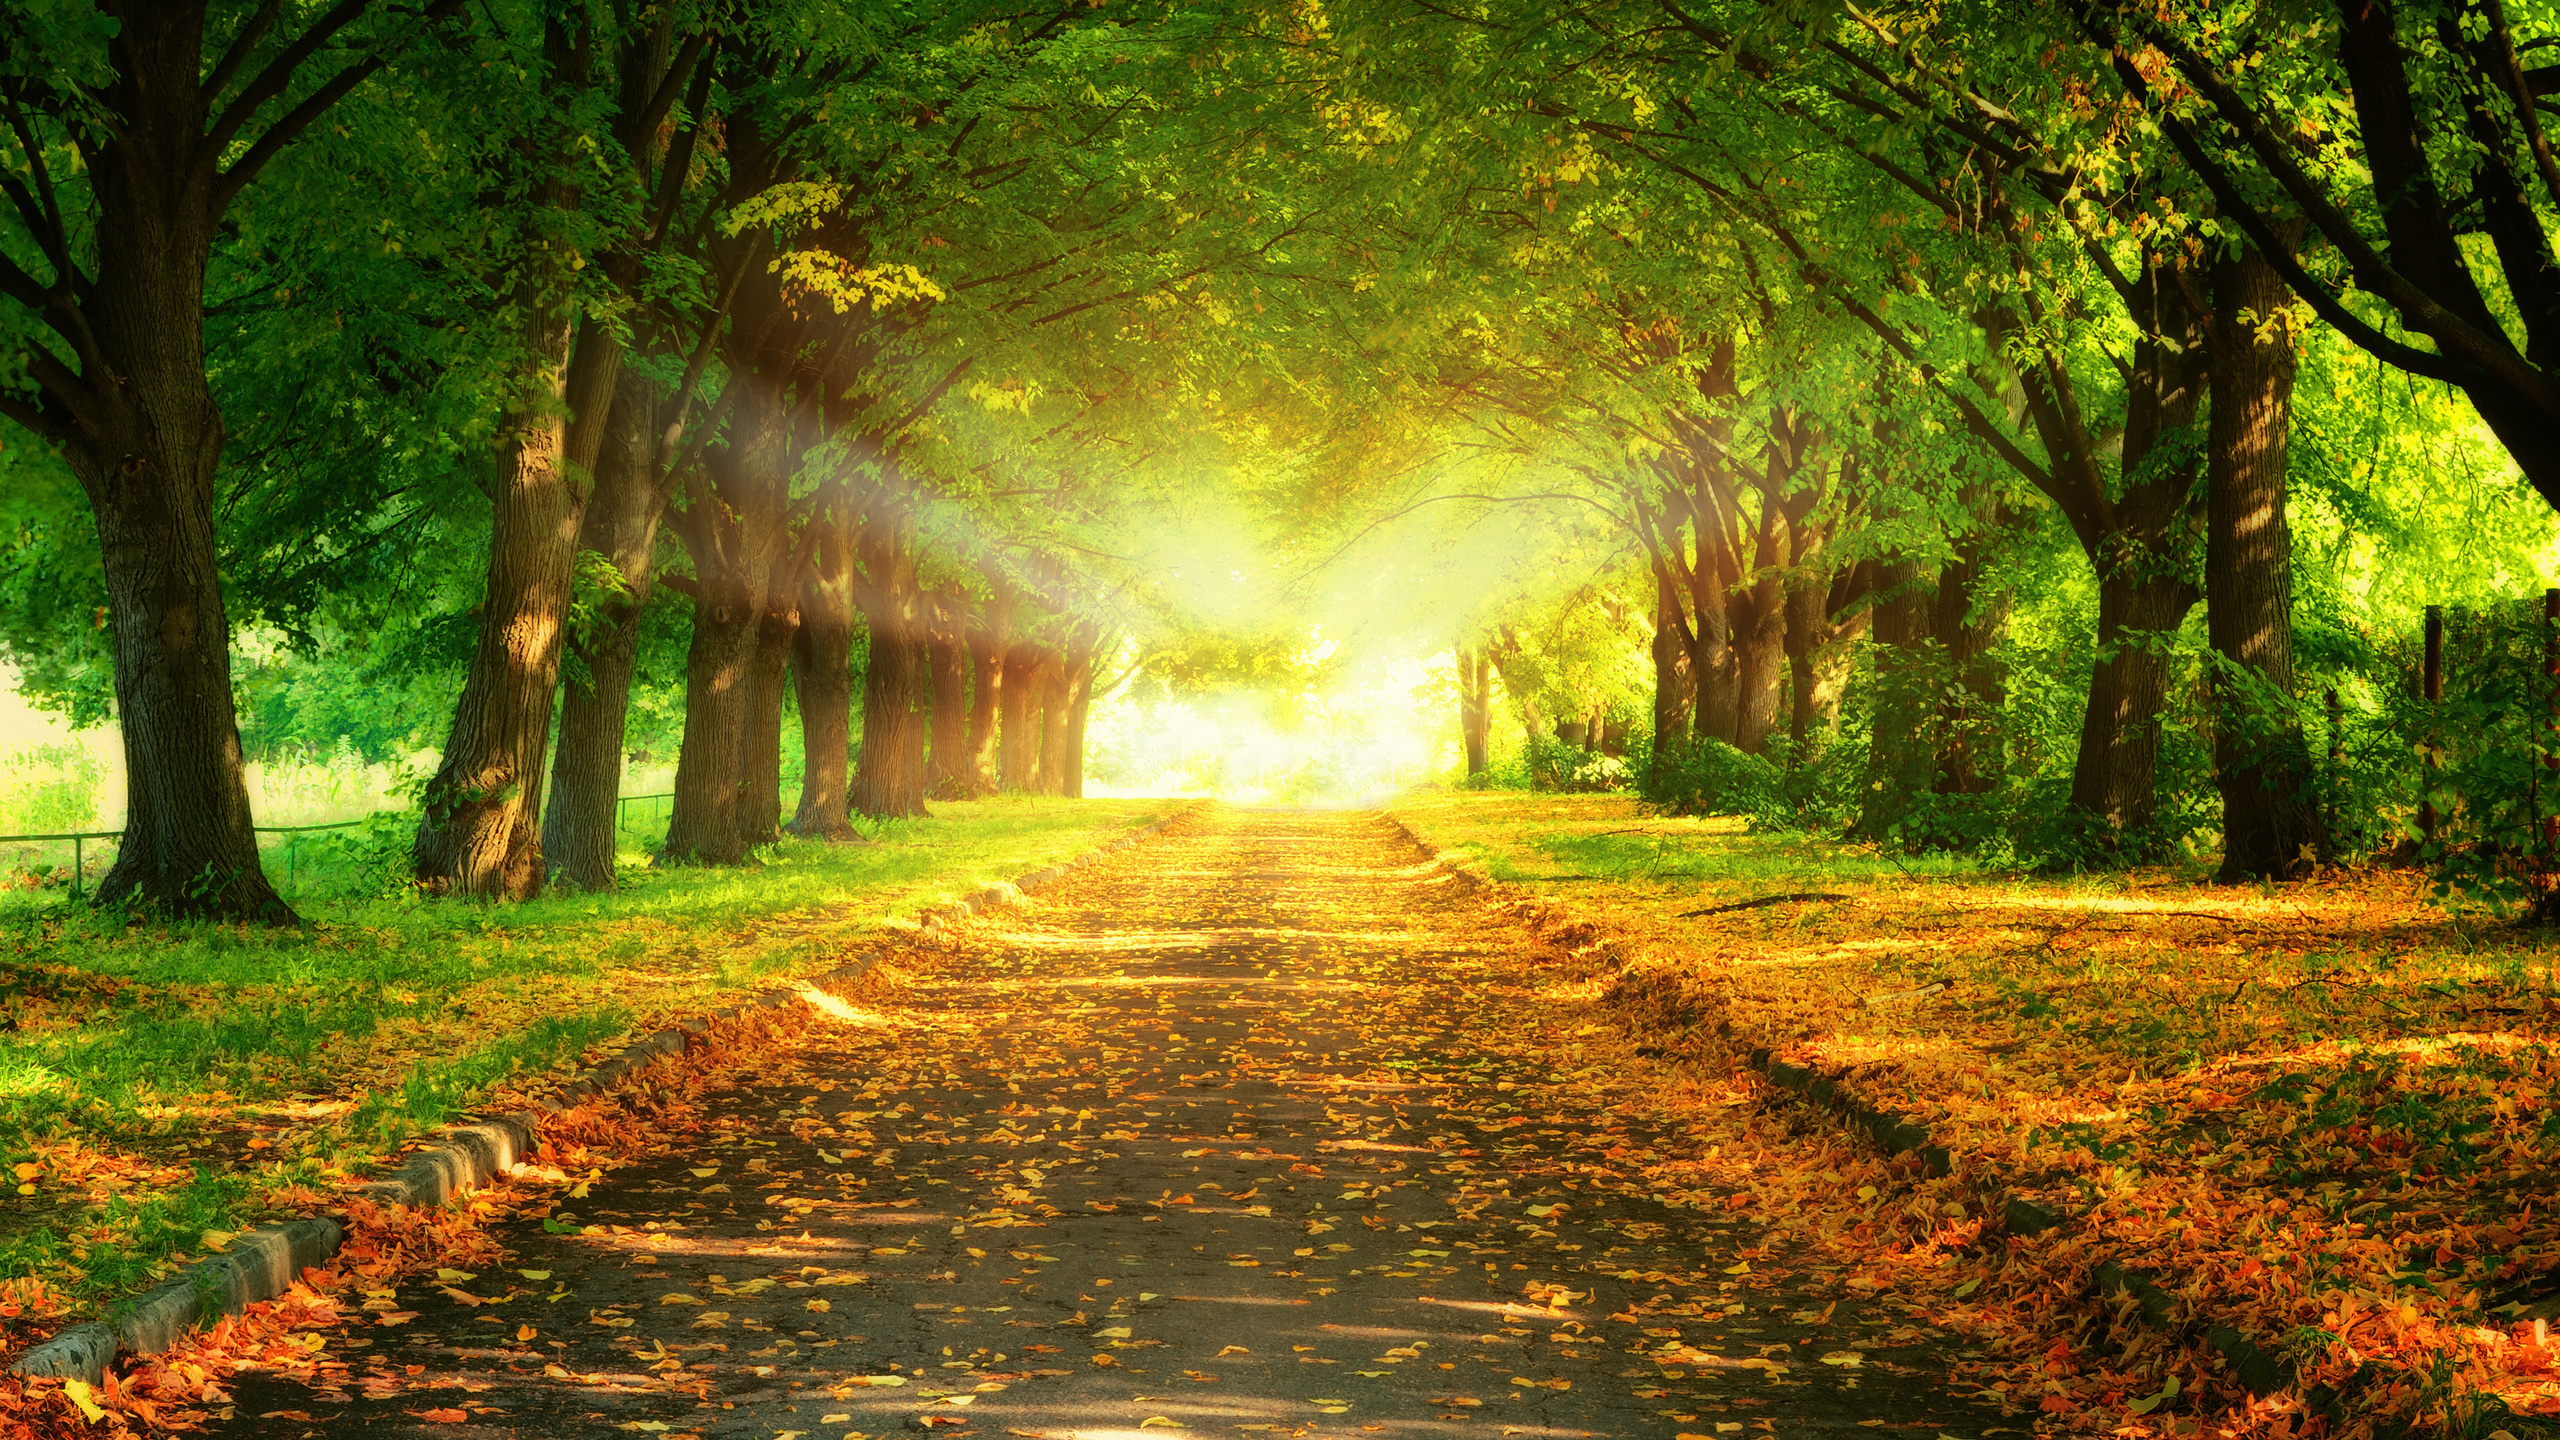 Nature beautiful trees majestic leaves landscape road sunset picture